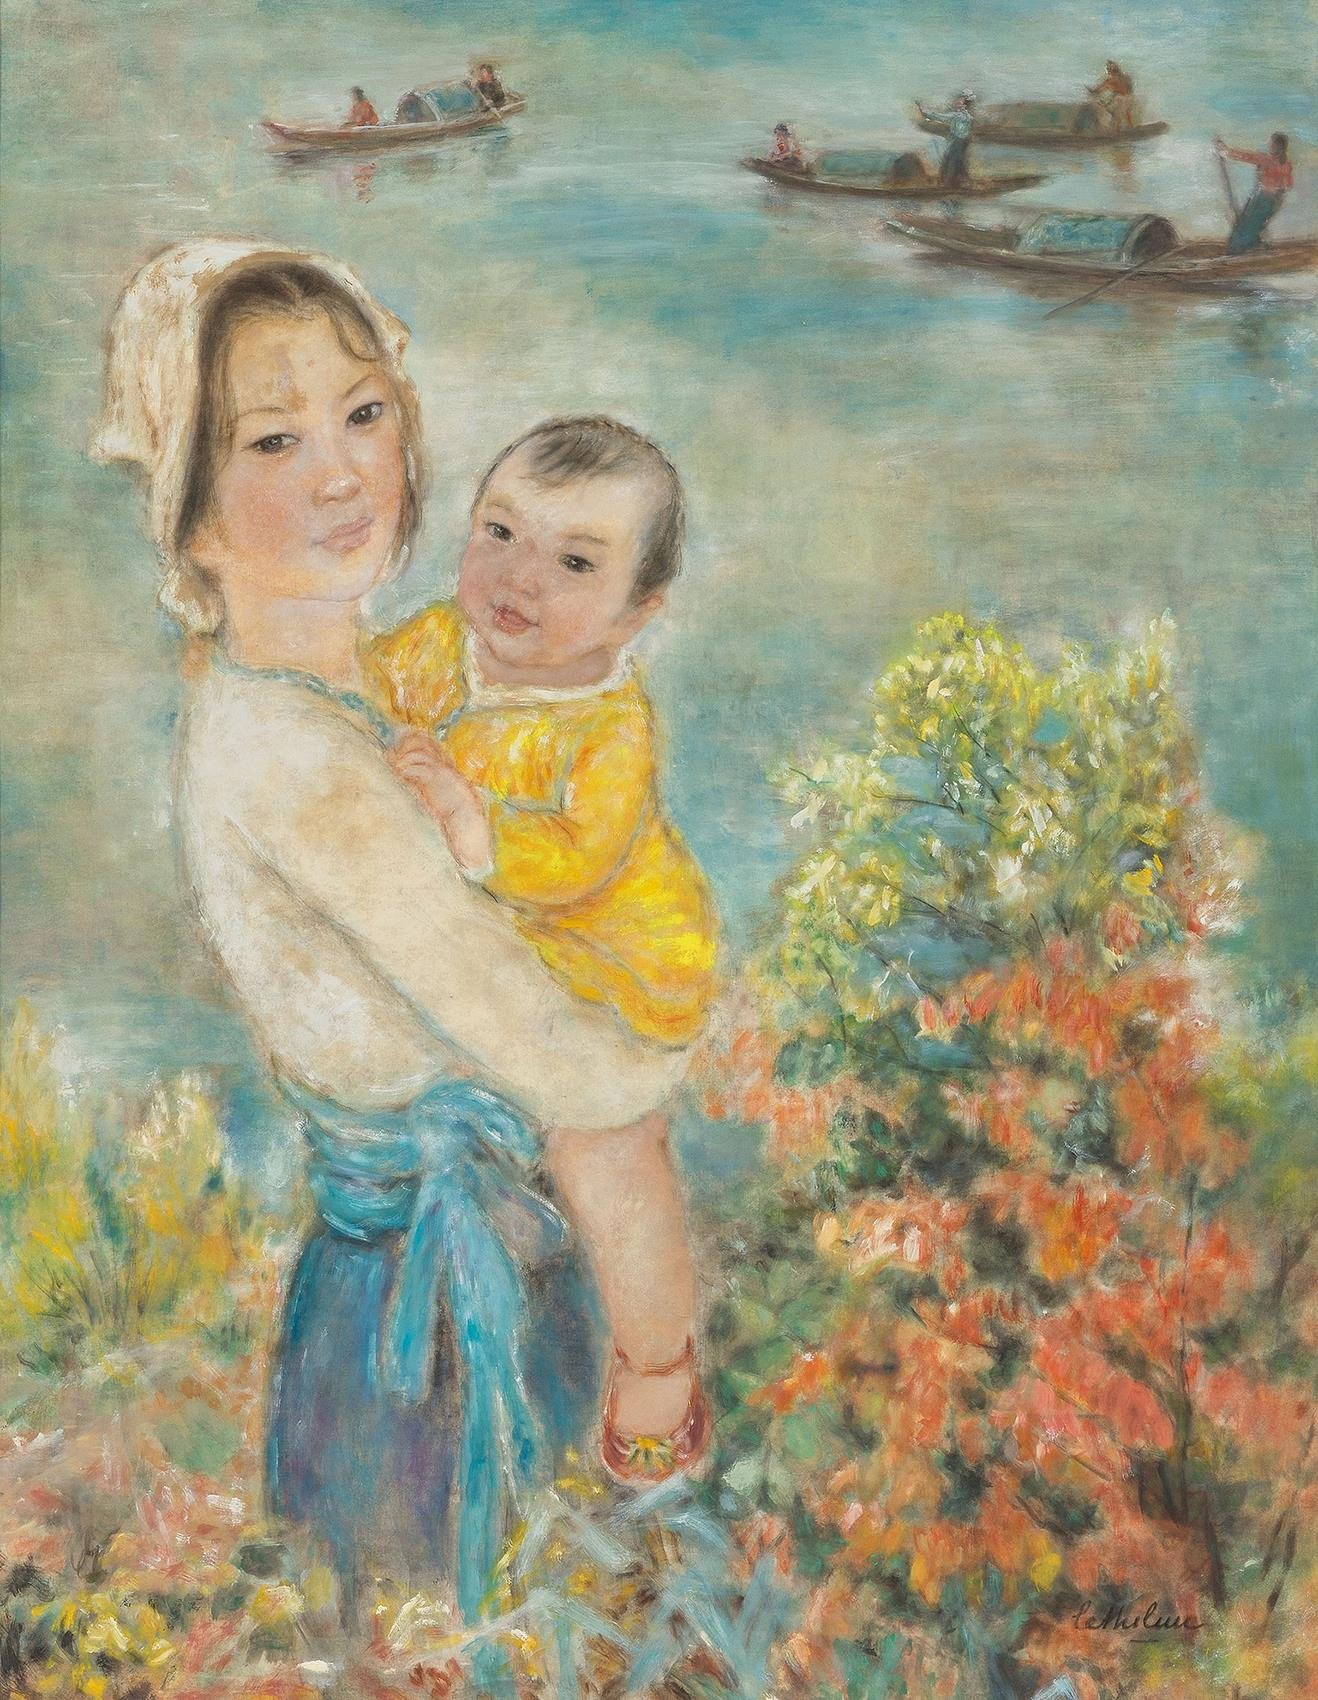 Vietnam Most Famous Paintings - Mother & Child